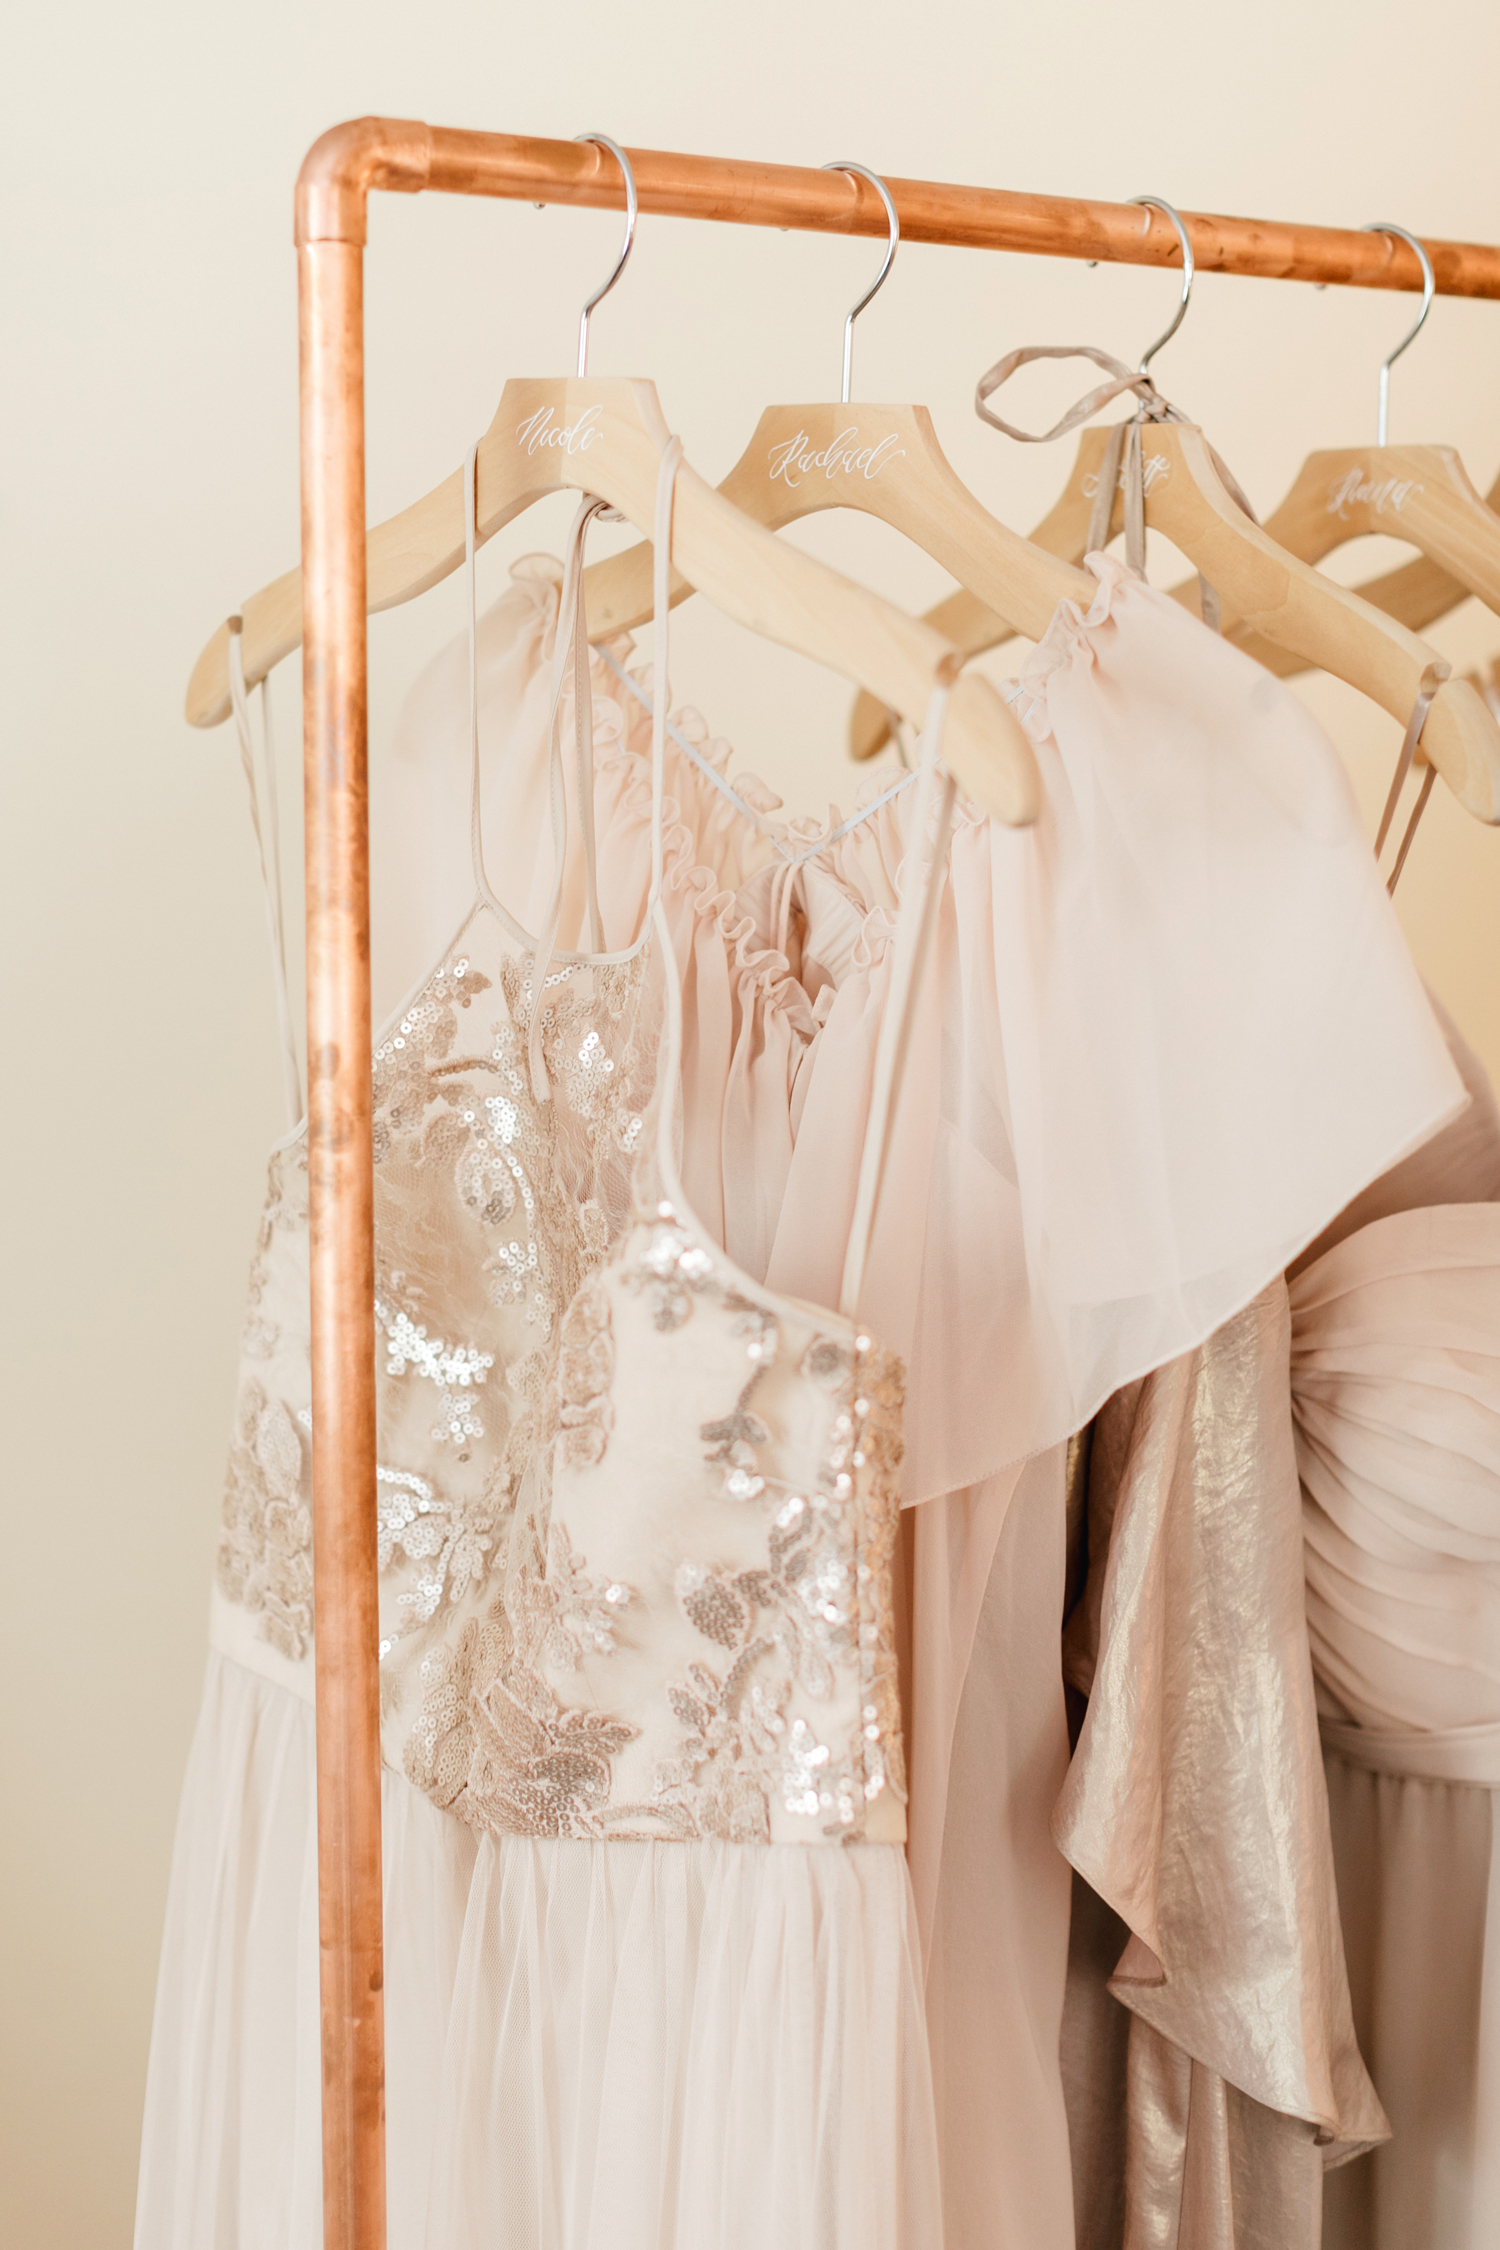 pale blush bridesmaids dresses hanging from copper clothing rack